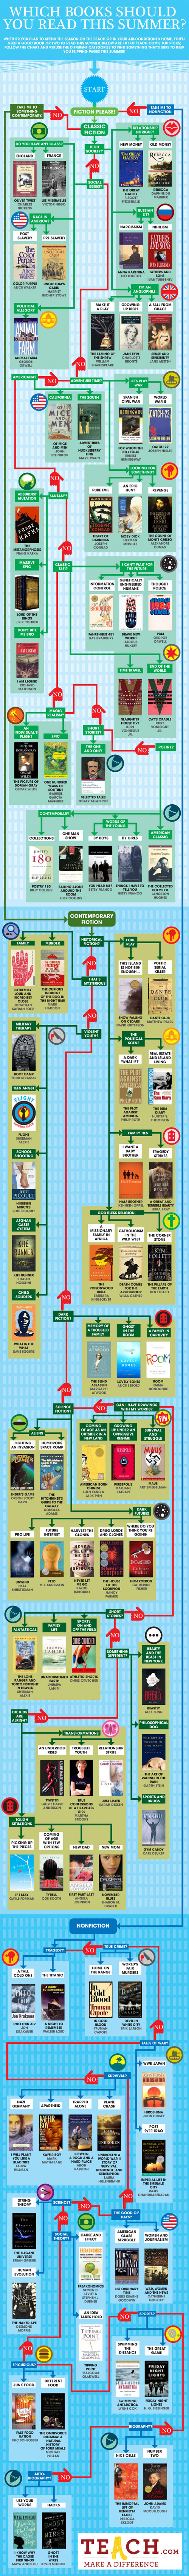 Summer Reading Flow Chart